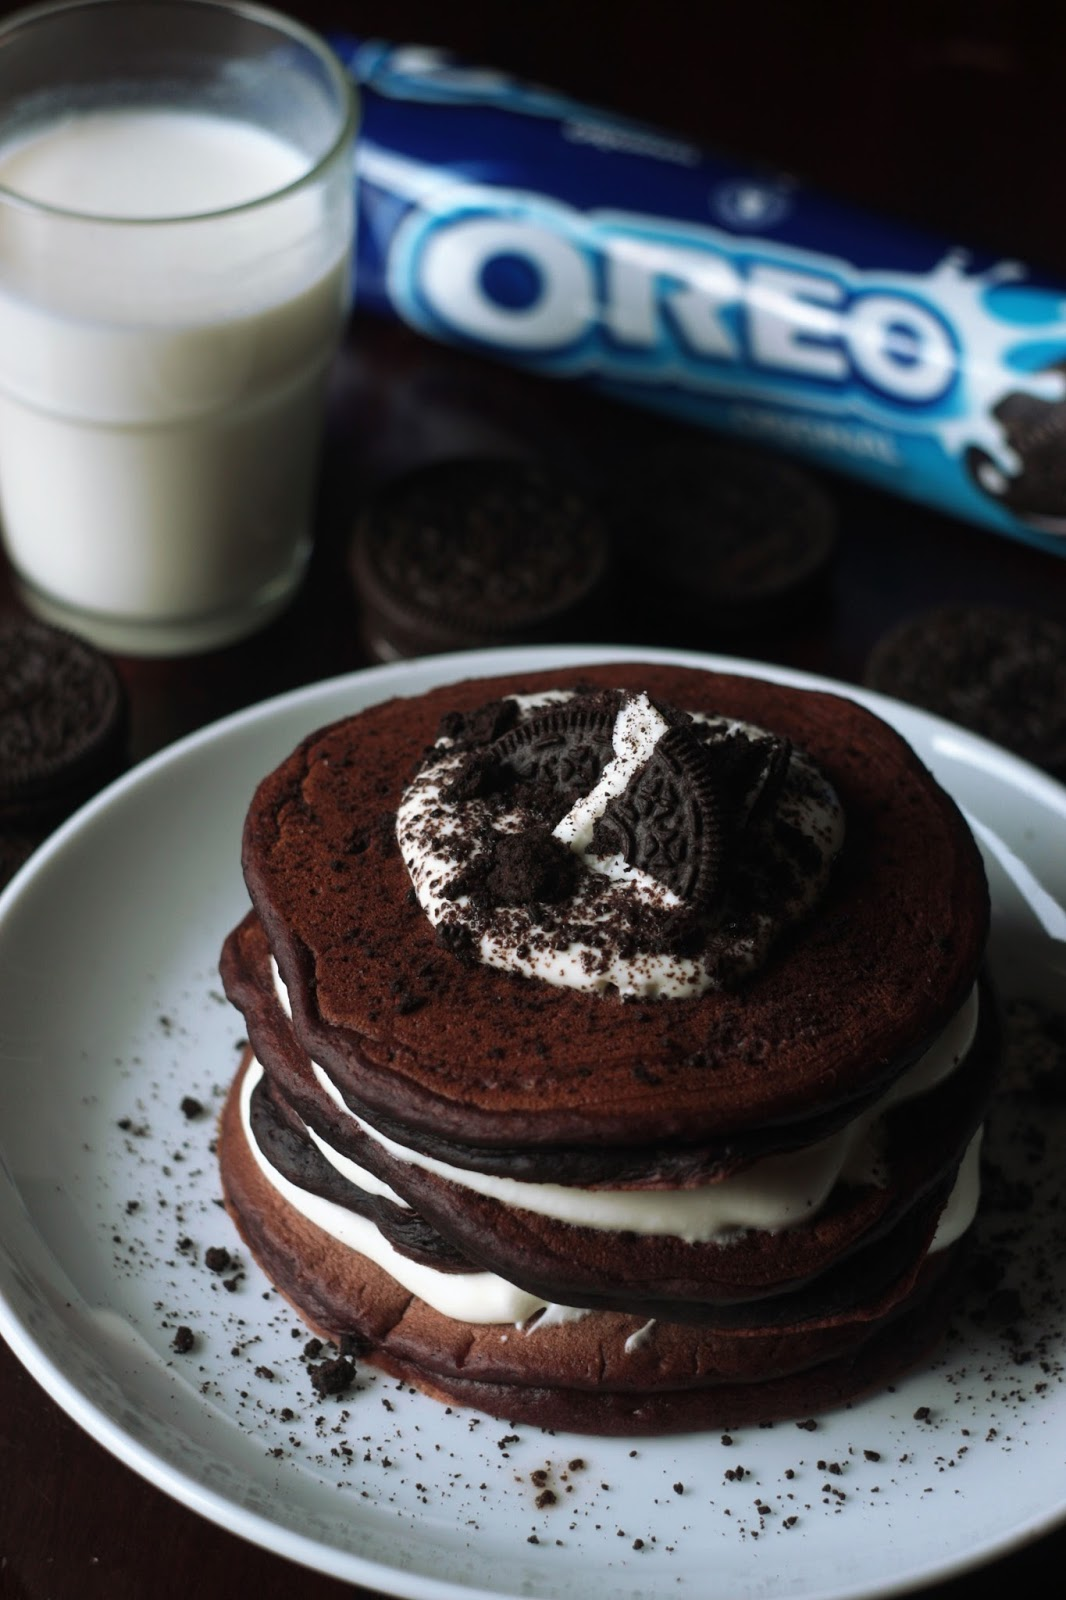 A Yummy Stack of Chocolate Oreo Pancakes with a Glass of Milk - brought to you by Pancake Stories.